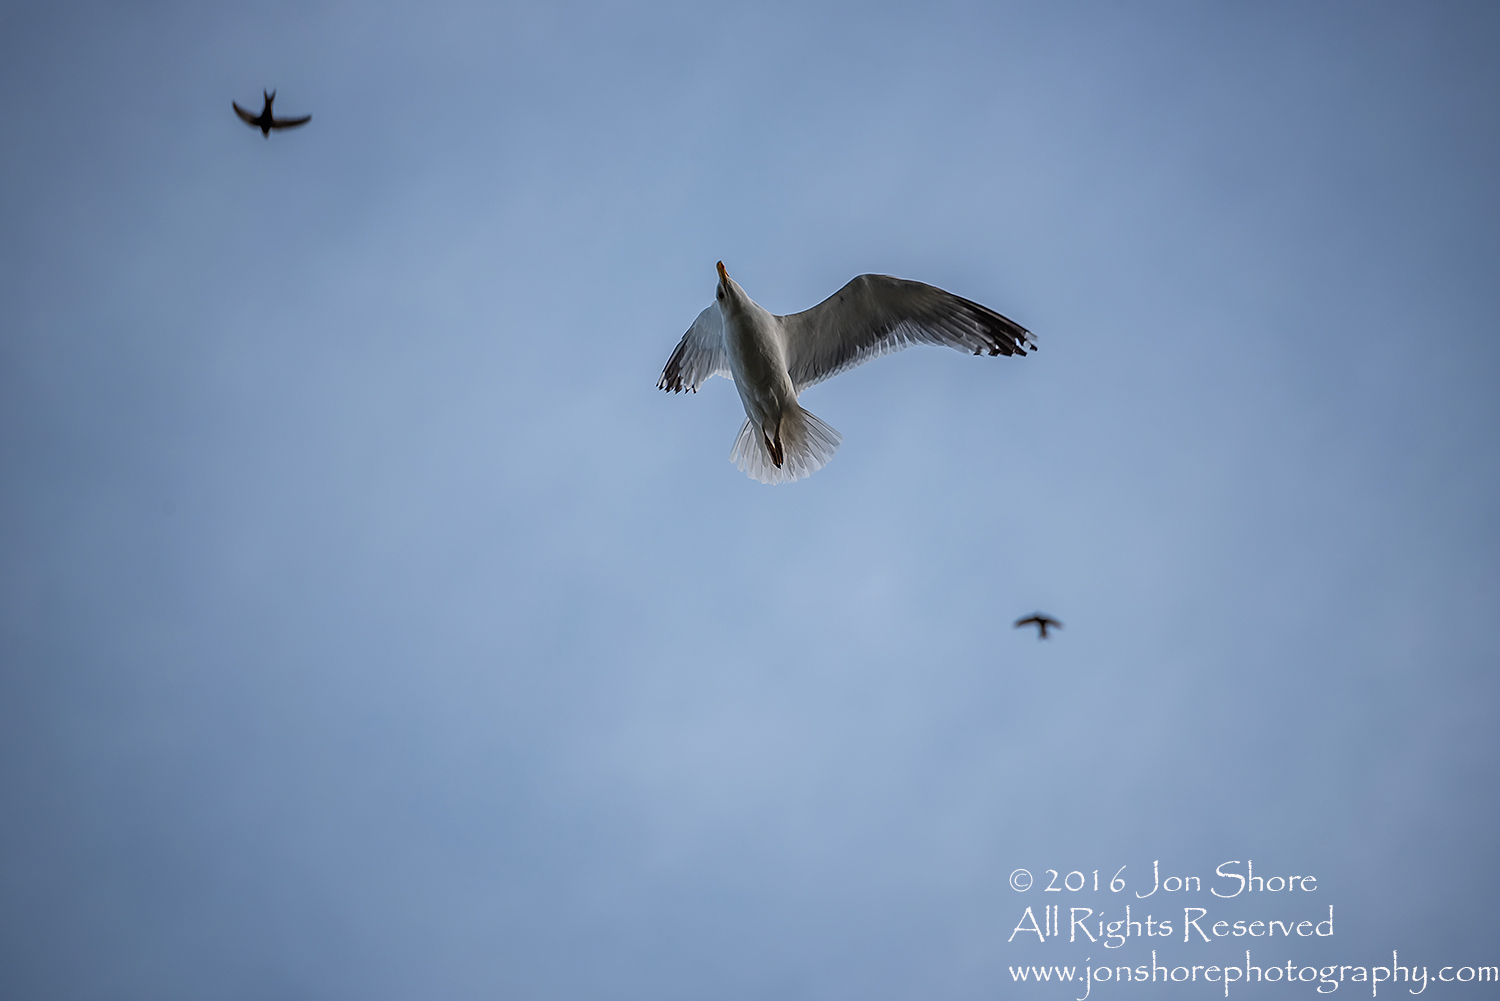 Seagull in Blue Sky. Tamron 300mm lens